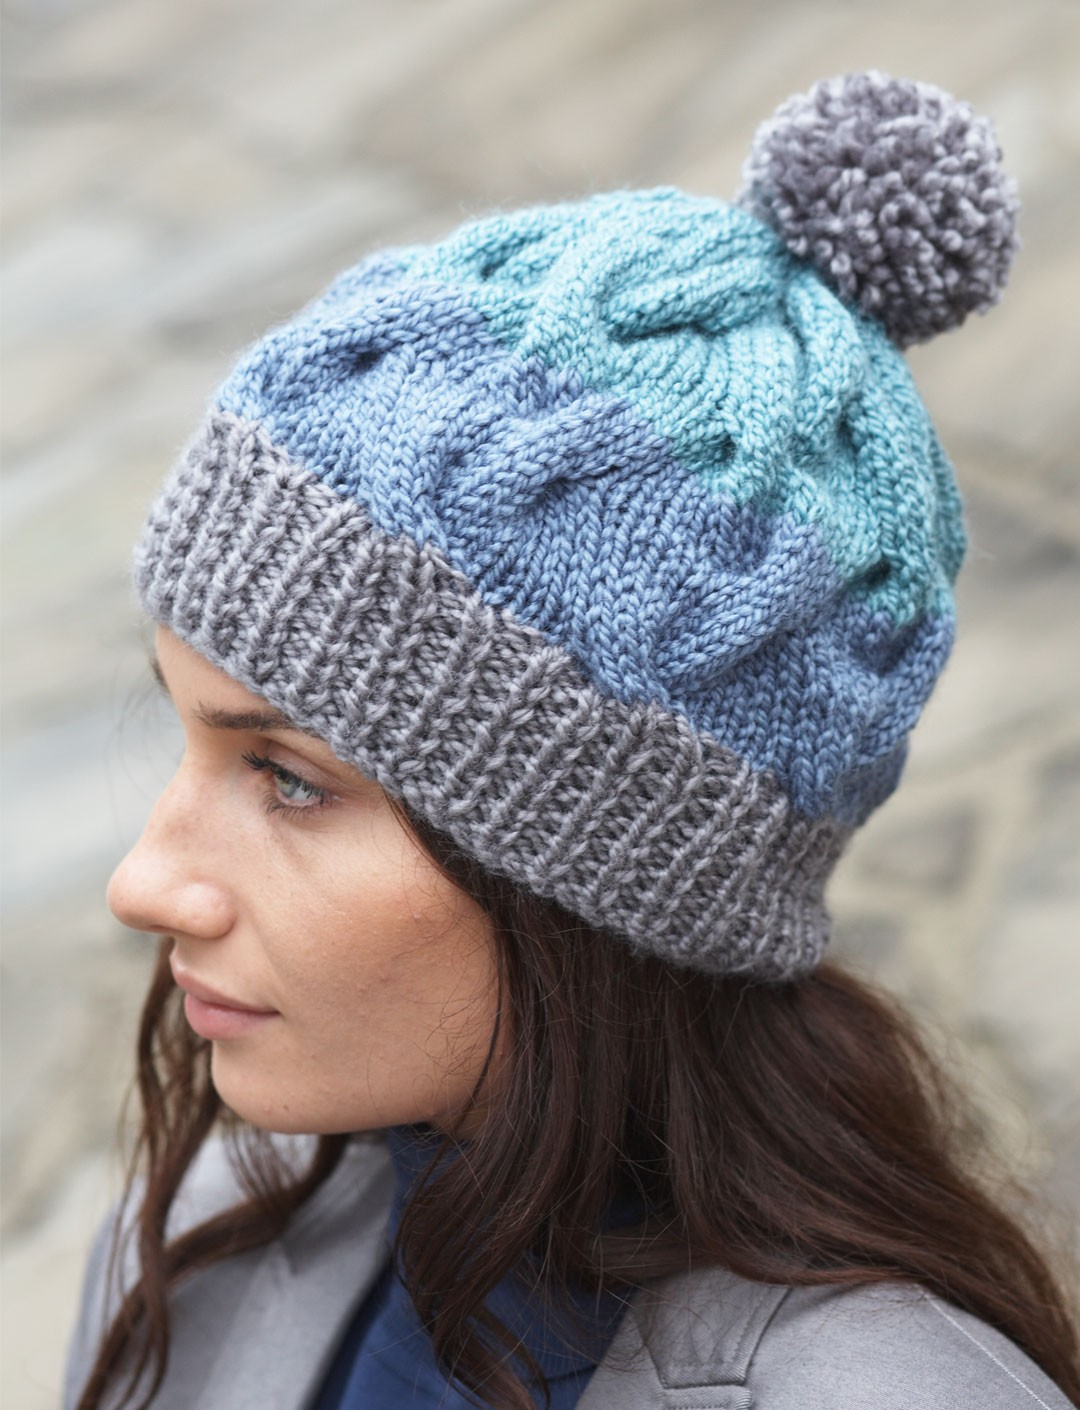 Patons Striped Cable Hat, Knit Pattern Yarnspirations